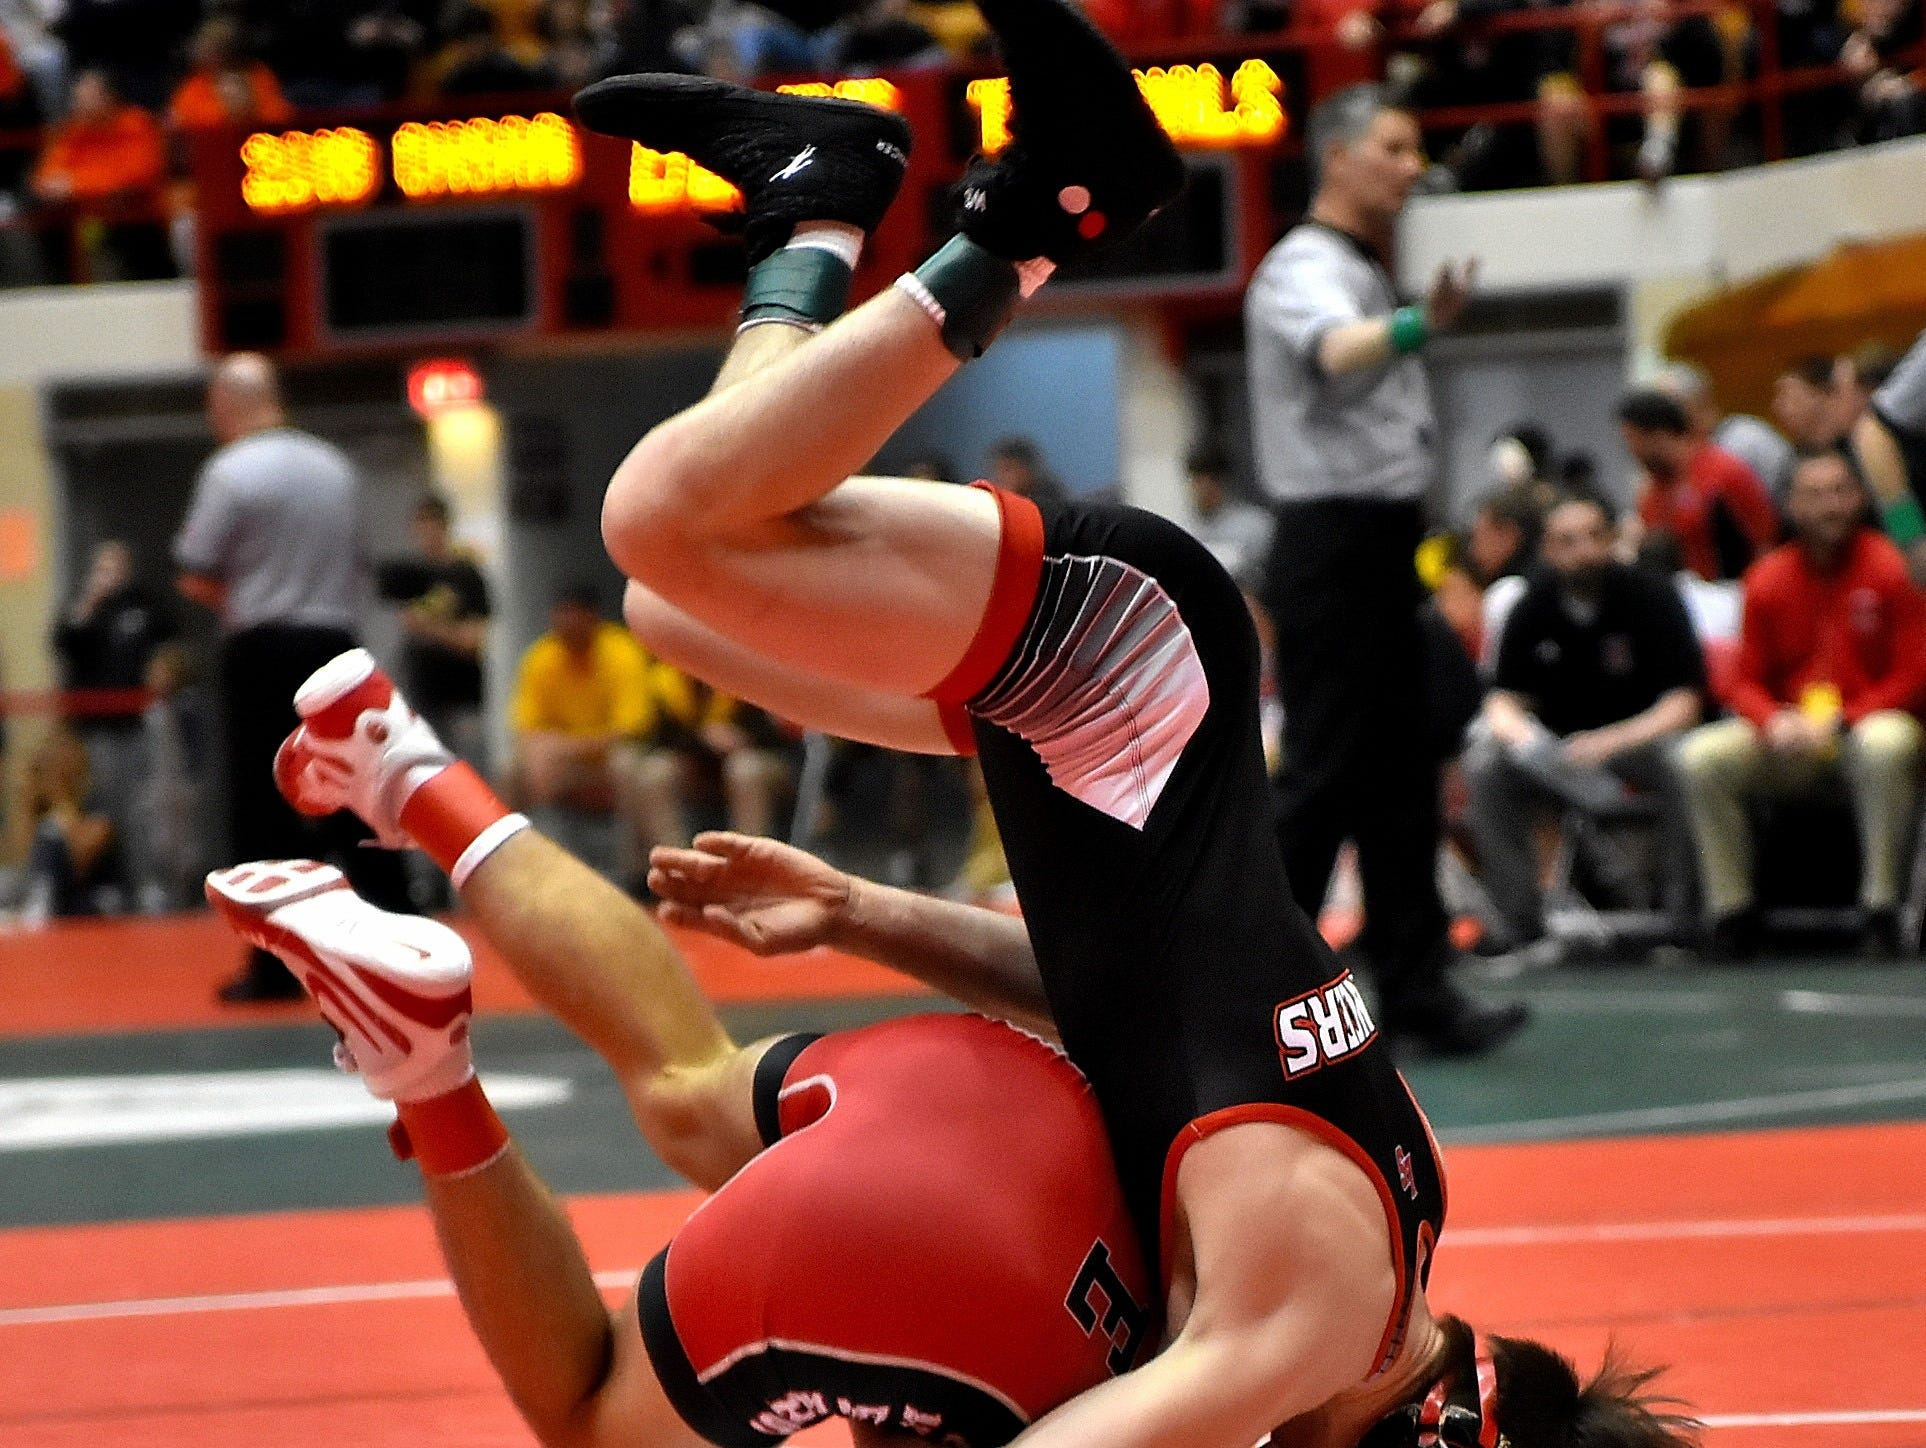 Lucas Byrd of La Salle (right) wrestles headstrong to a win in the Division 1 quarter-final at the 2018 OHSAA State Wrestling Duals, Feb. 11, 2018.